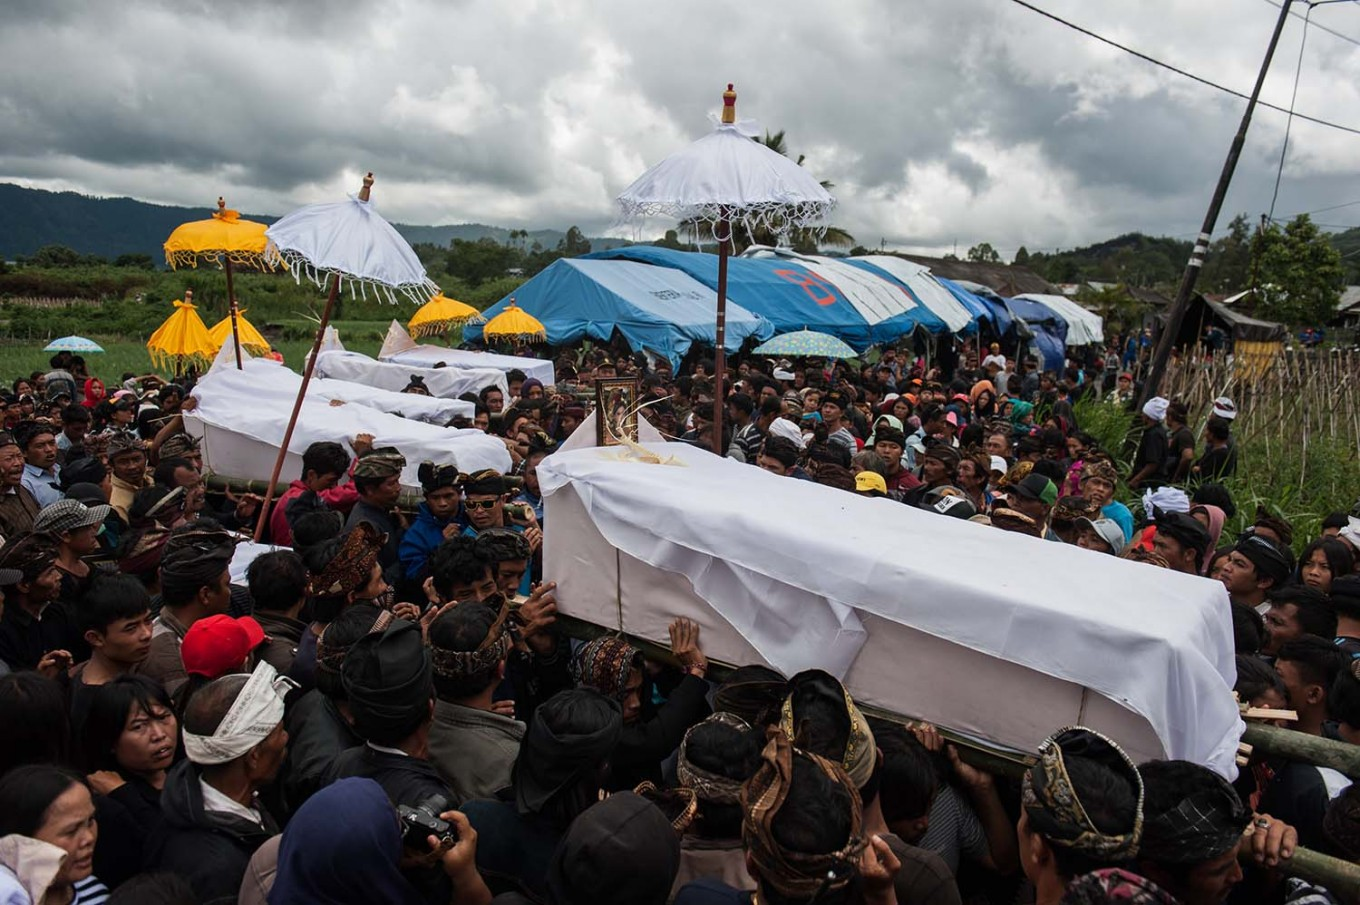 People of Kintamani carry a coffin of a landslide victim to the cemetery in Songan village, Kintamani, Bali, on Monday, February 13, 2017. JP/ Anggara Mahendra